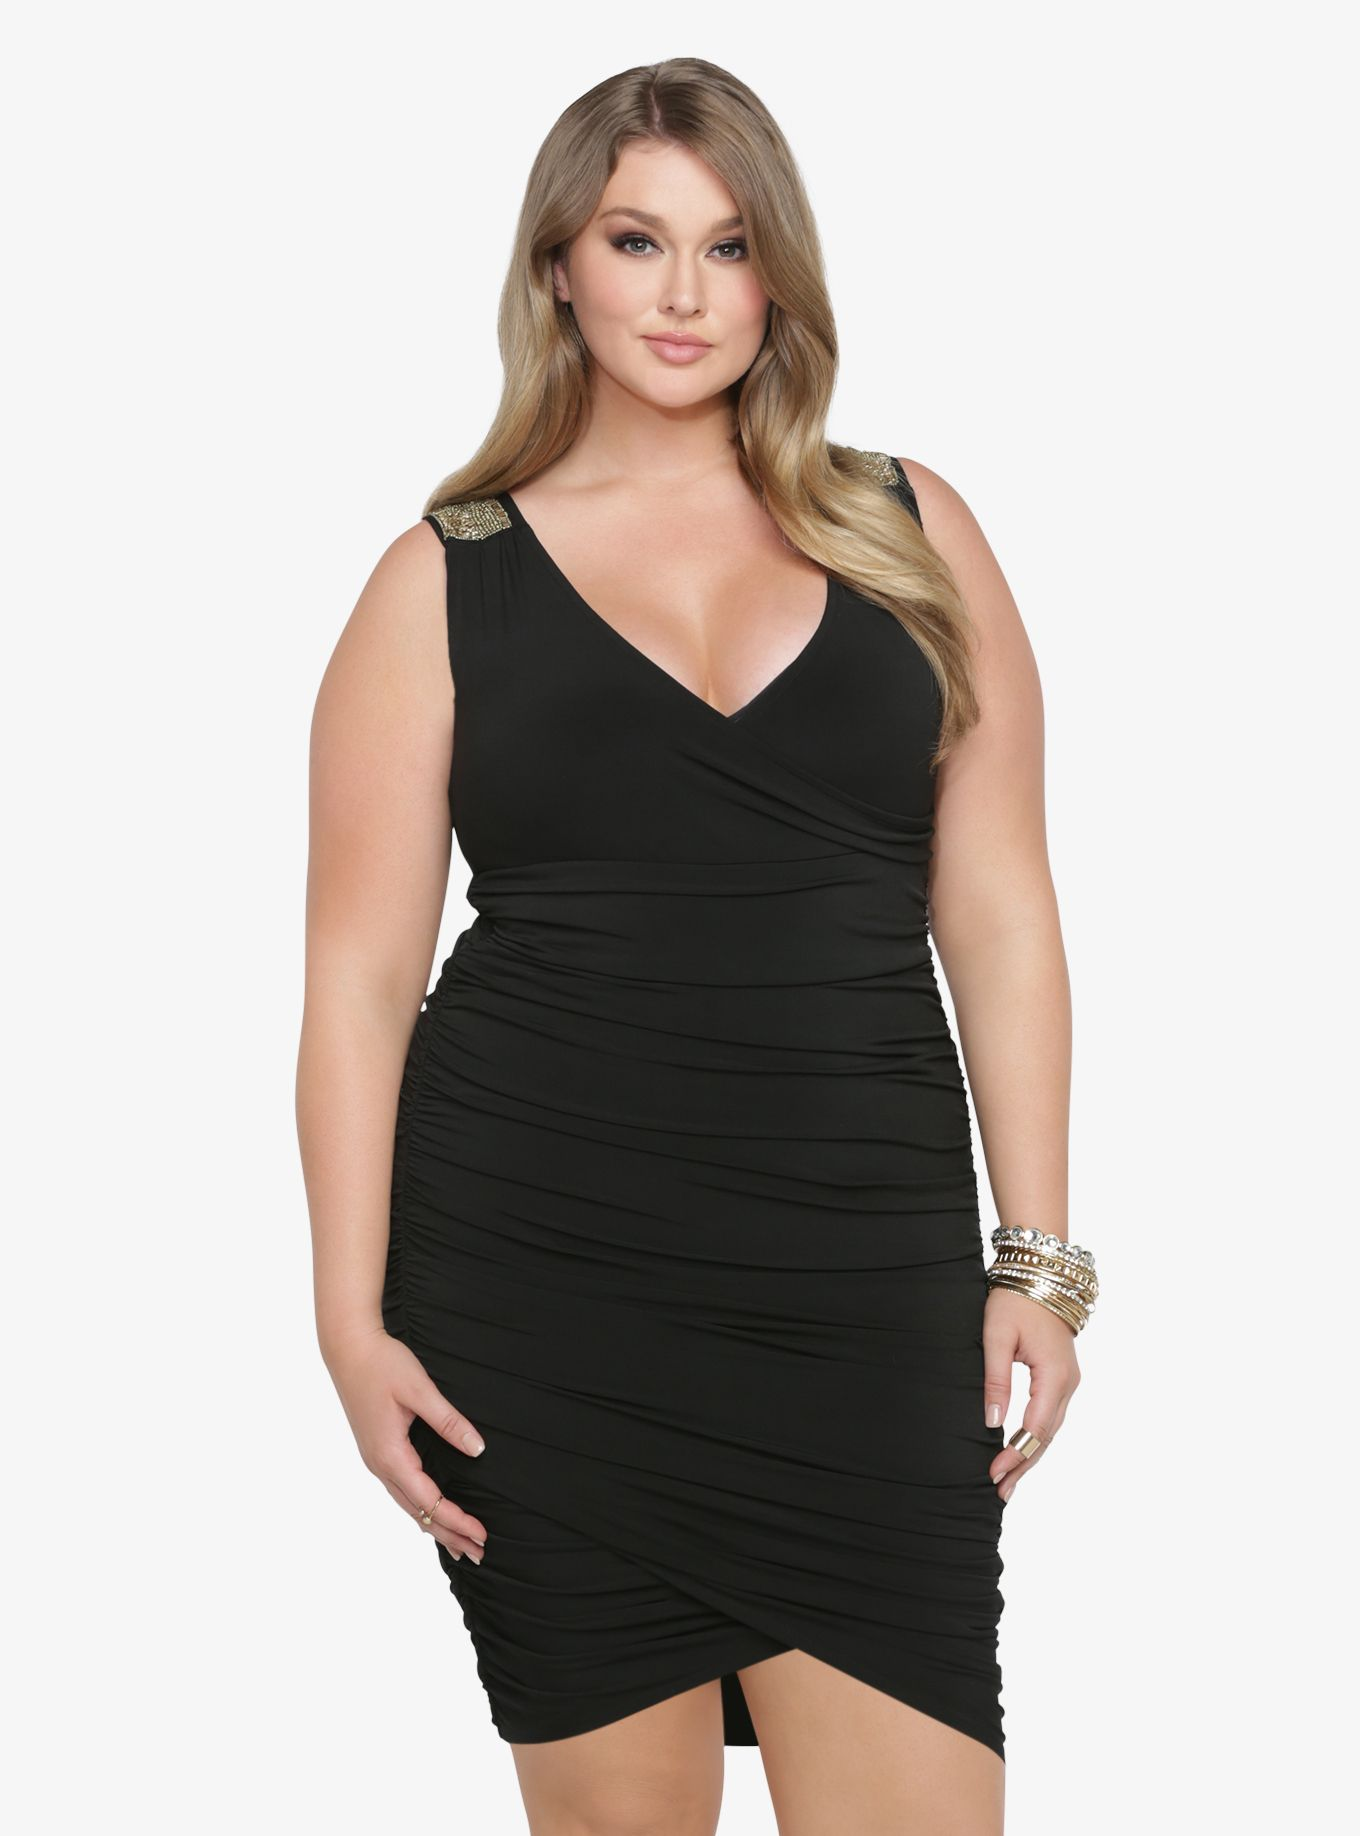 Beaded u ruched bodycon dress featured products from torrid